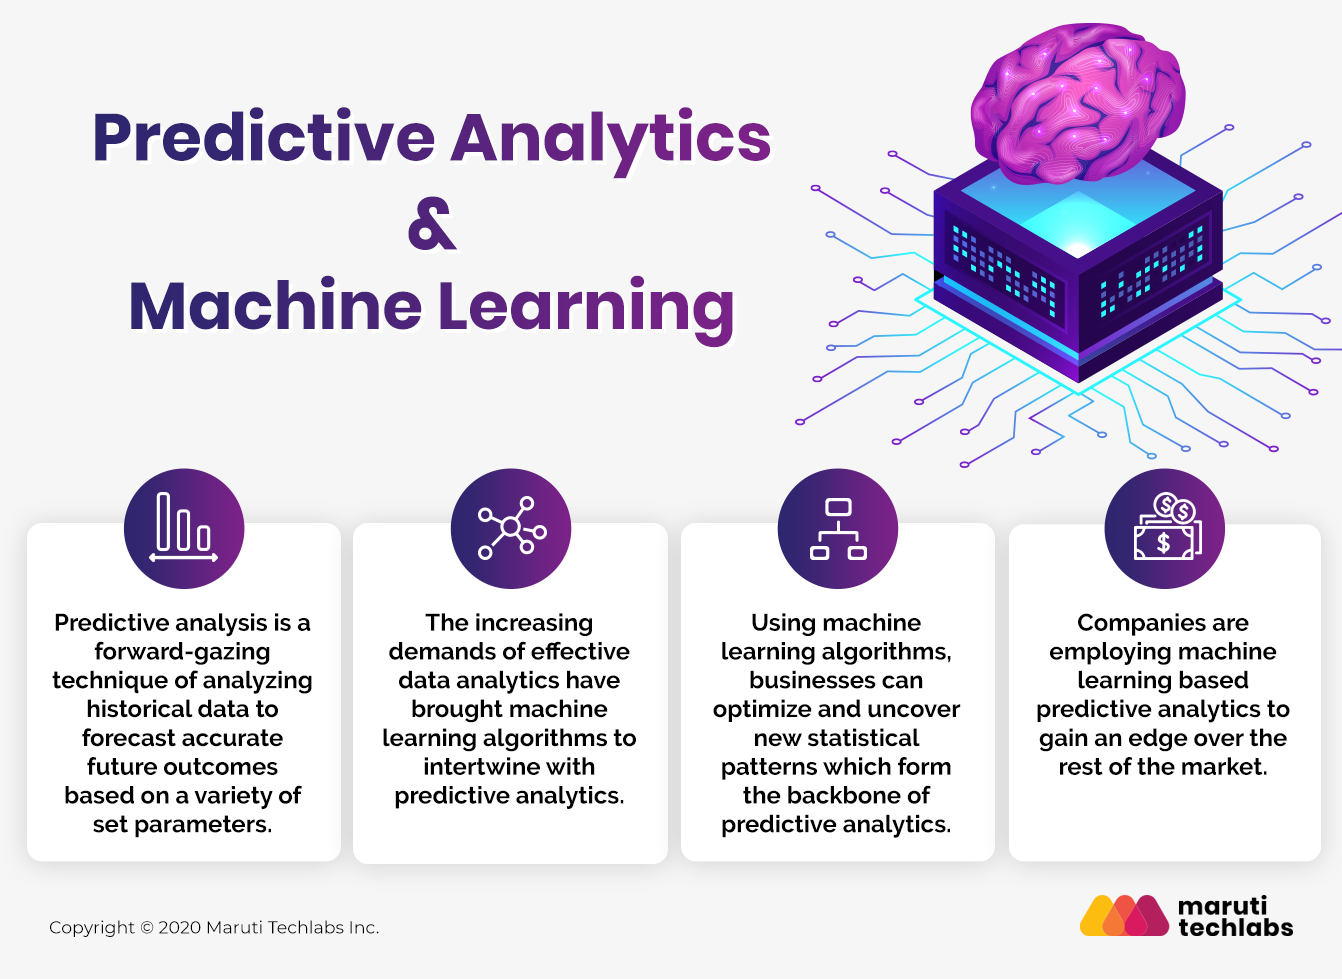 Machine Learning & Predictive Analytics